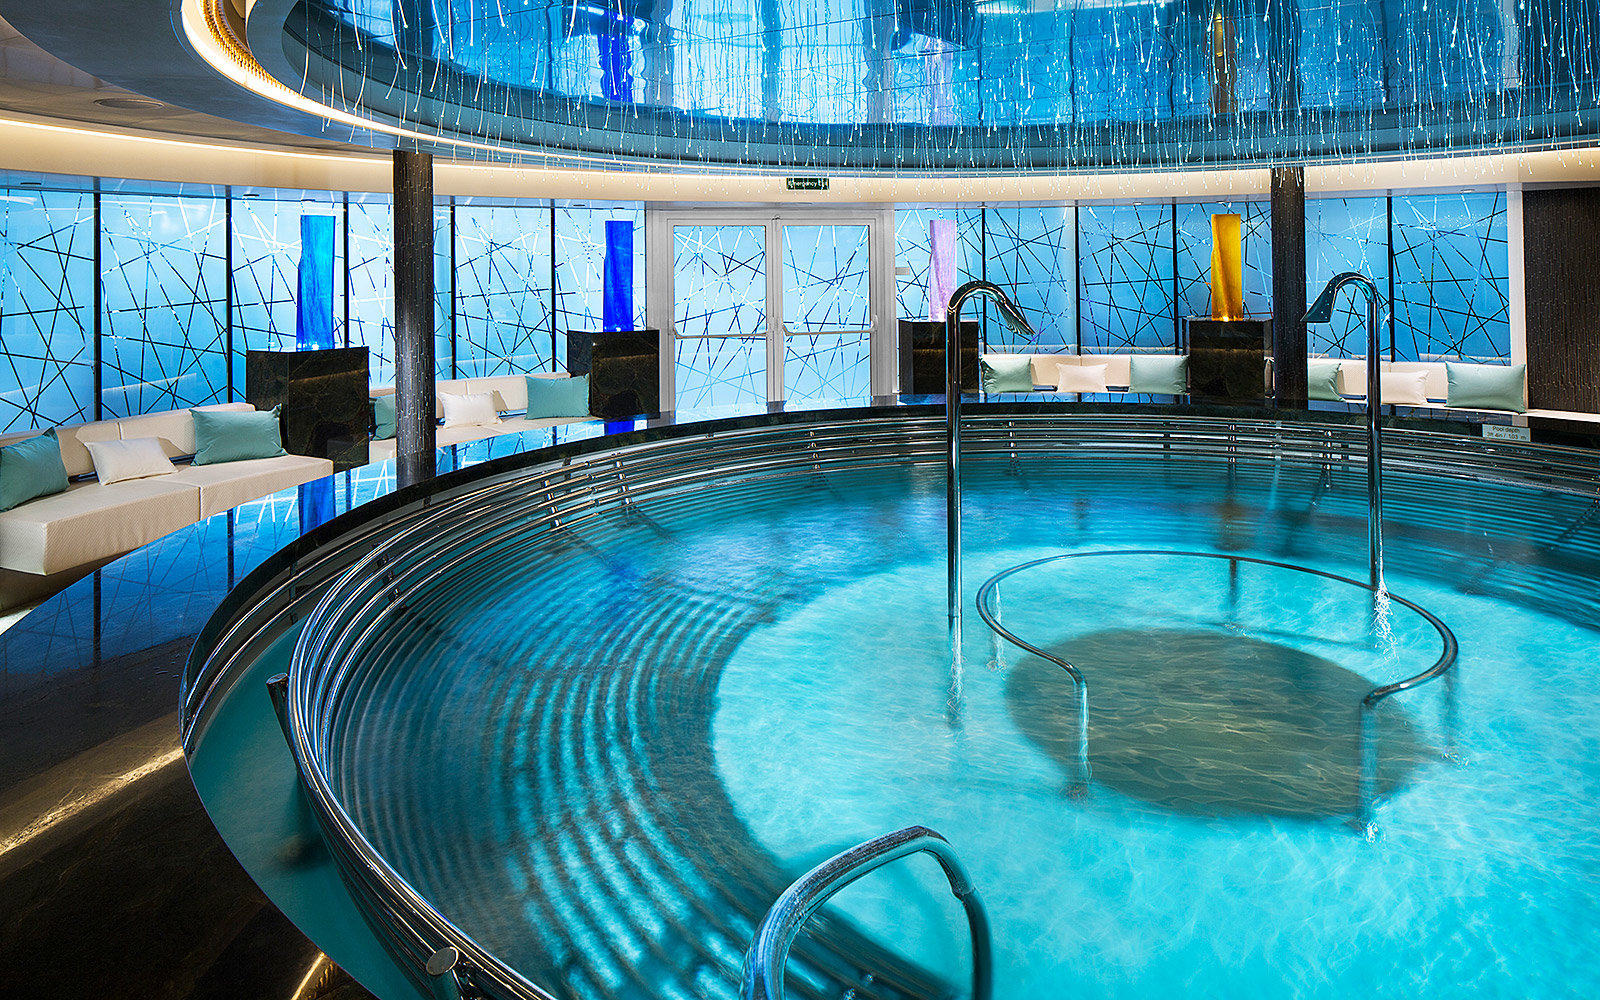 Pool Jacuzzi Jets Not Working On Board The New Holland Ameriac Koningsdam Travel 43 Leisure